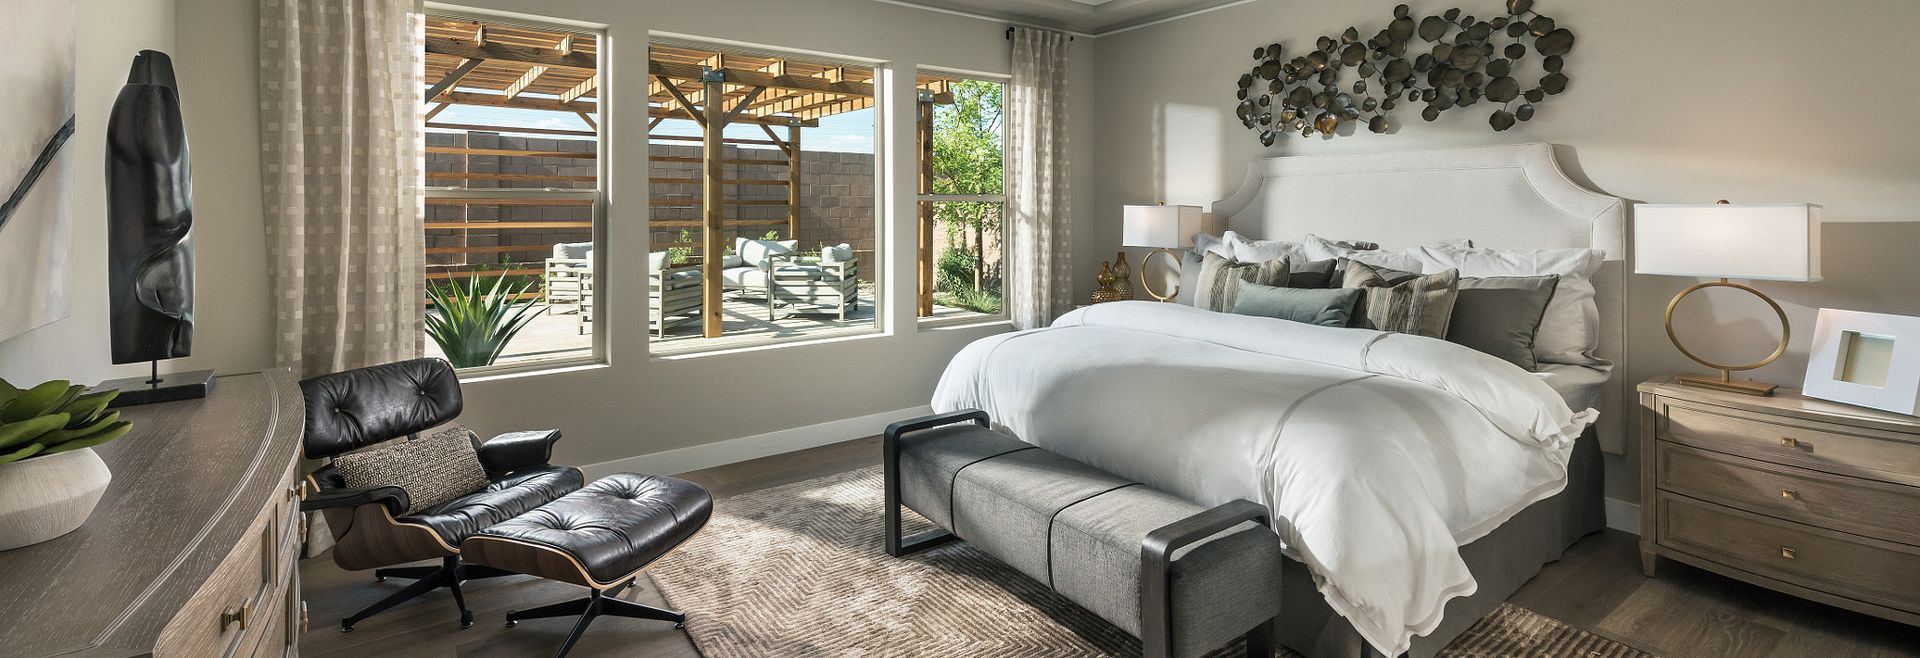 Master bedroom in the Flourish plan at Evolve at Cantilena in Arizona